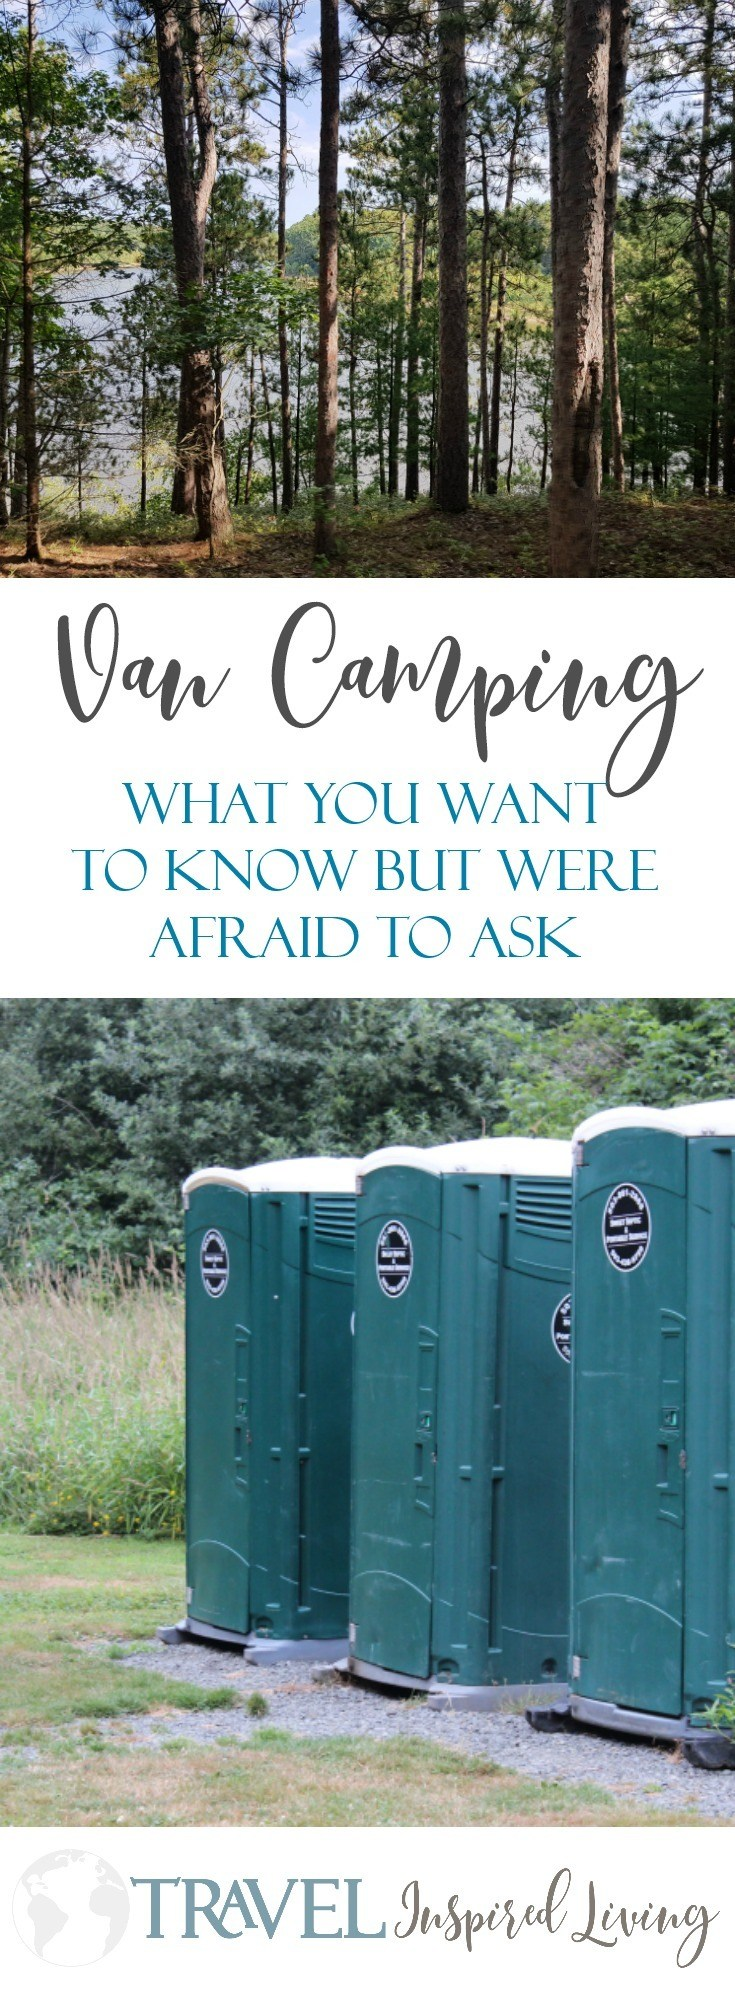 You have questions about van campin- I have answers. I share a few products that can help your van camping experience be a bit more pleasant.